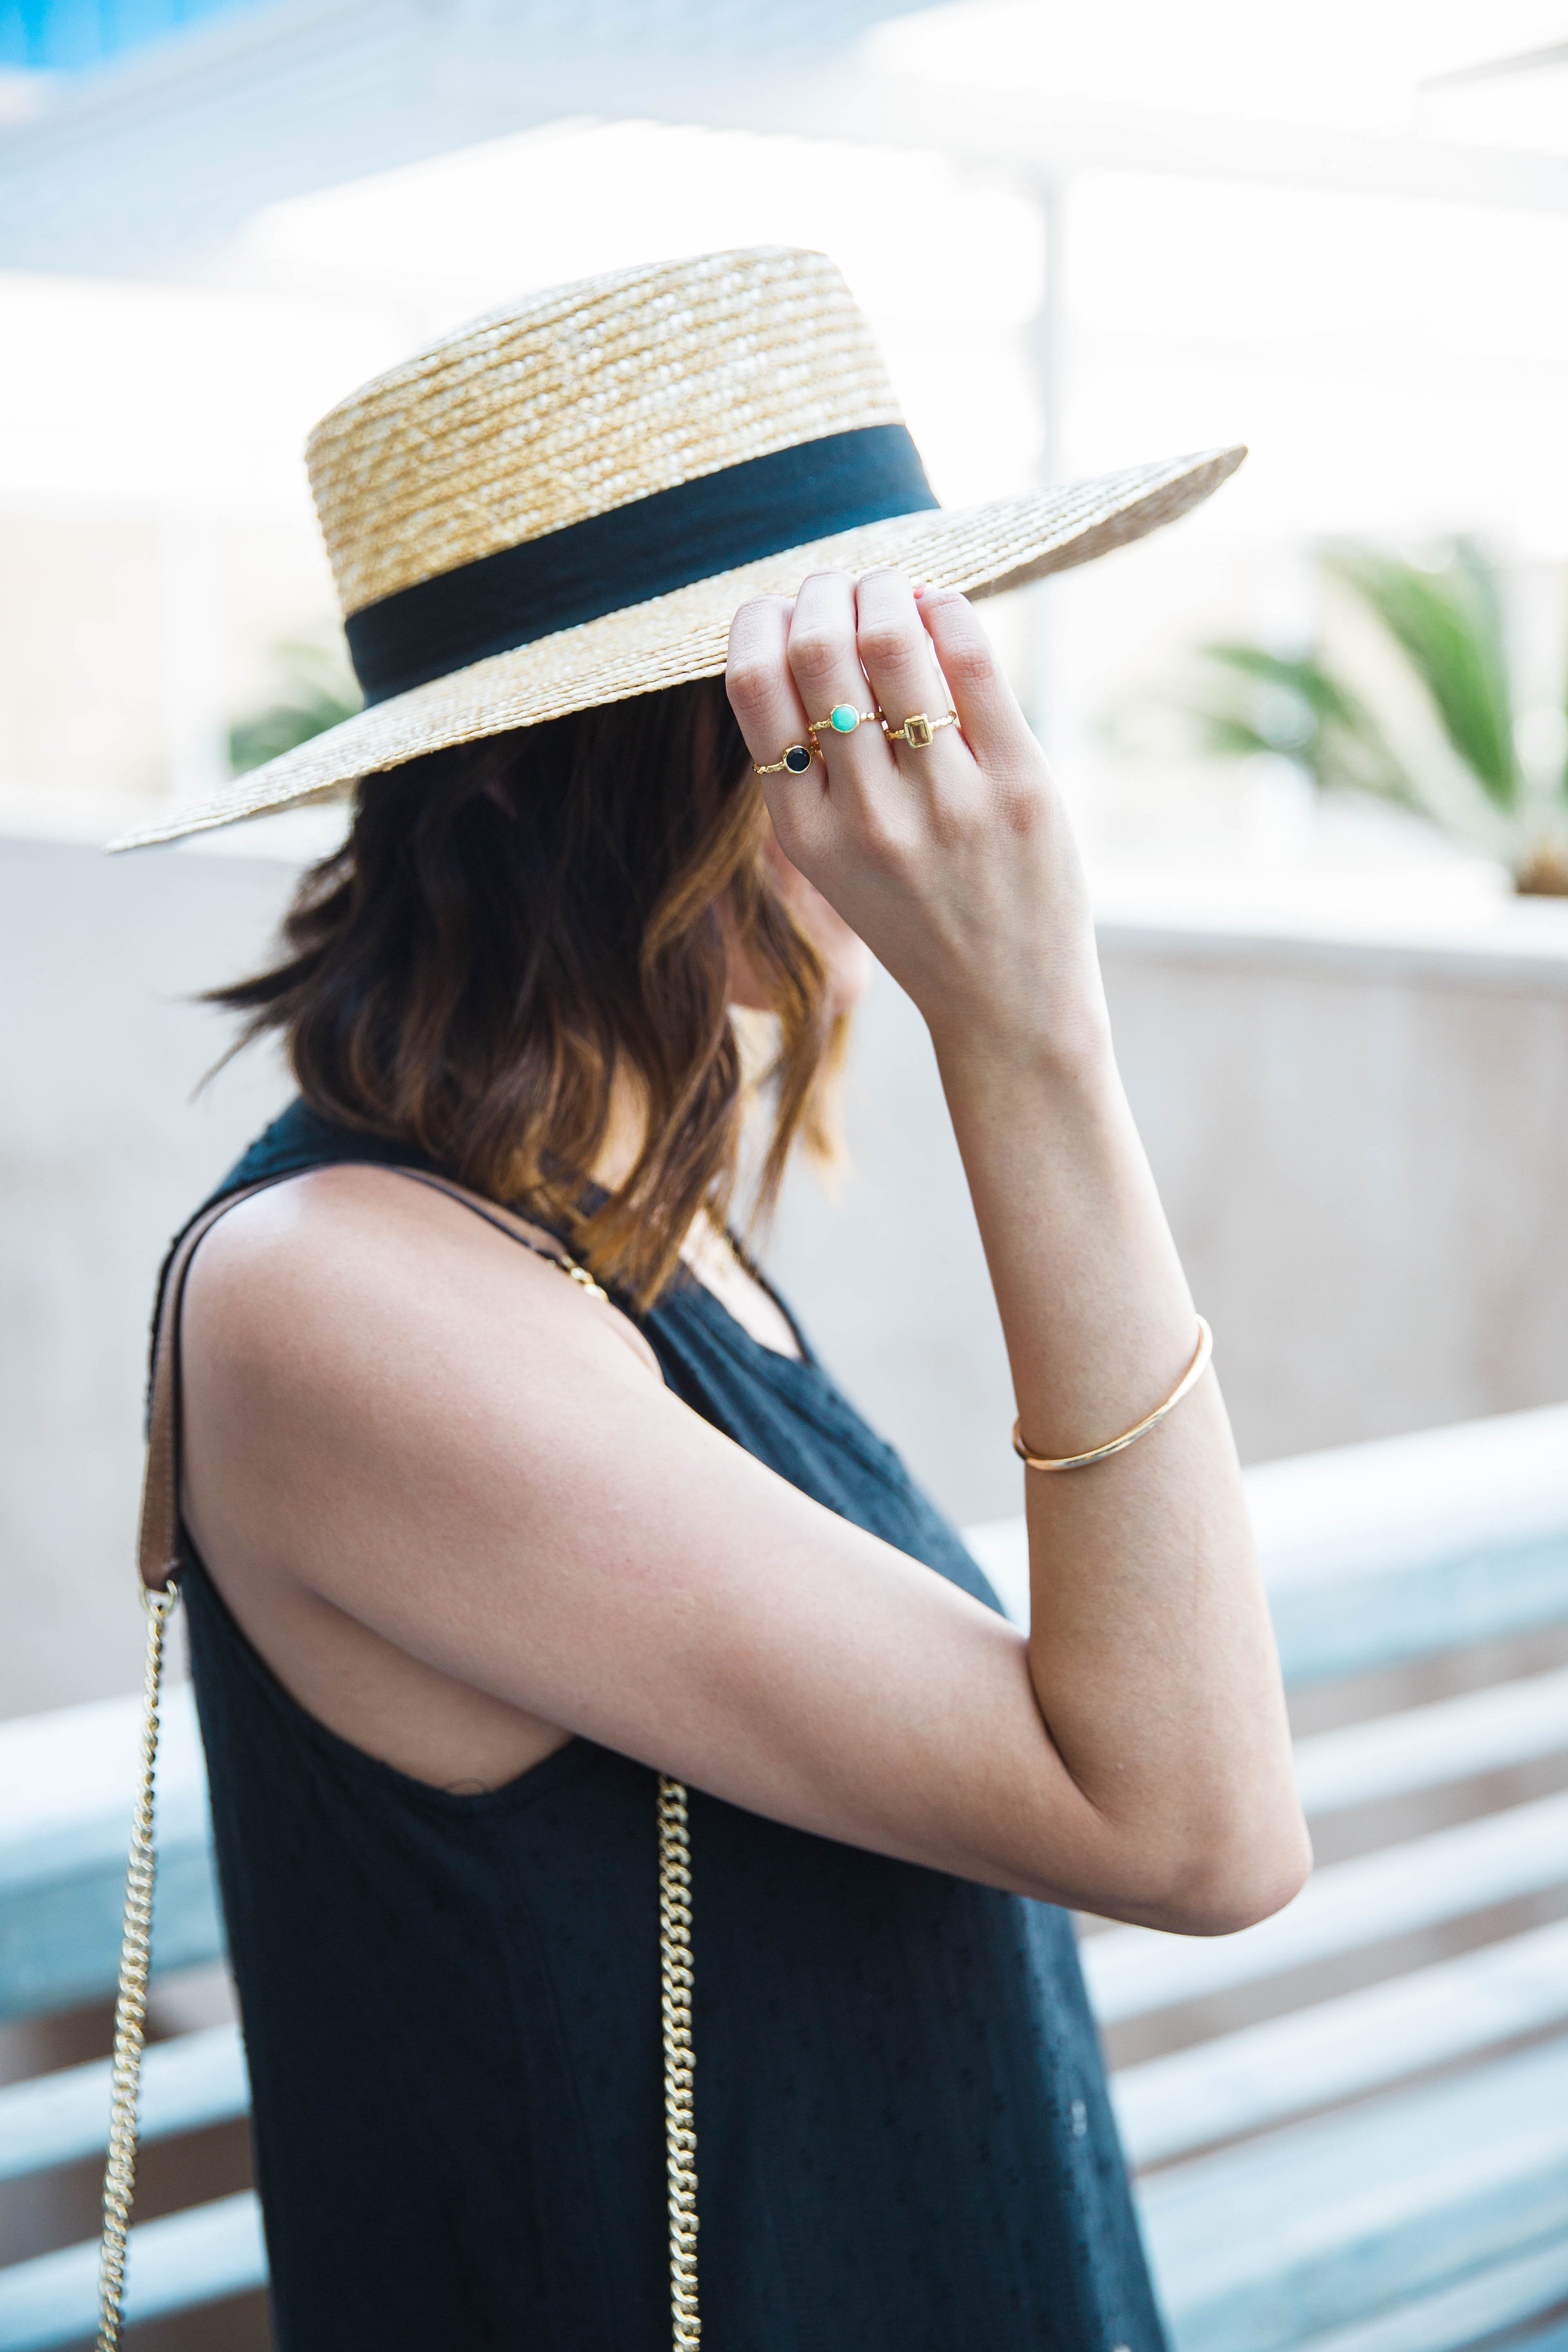 How to accessorize a minimal look with just a hat and jewelry